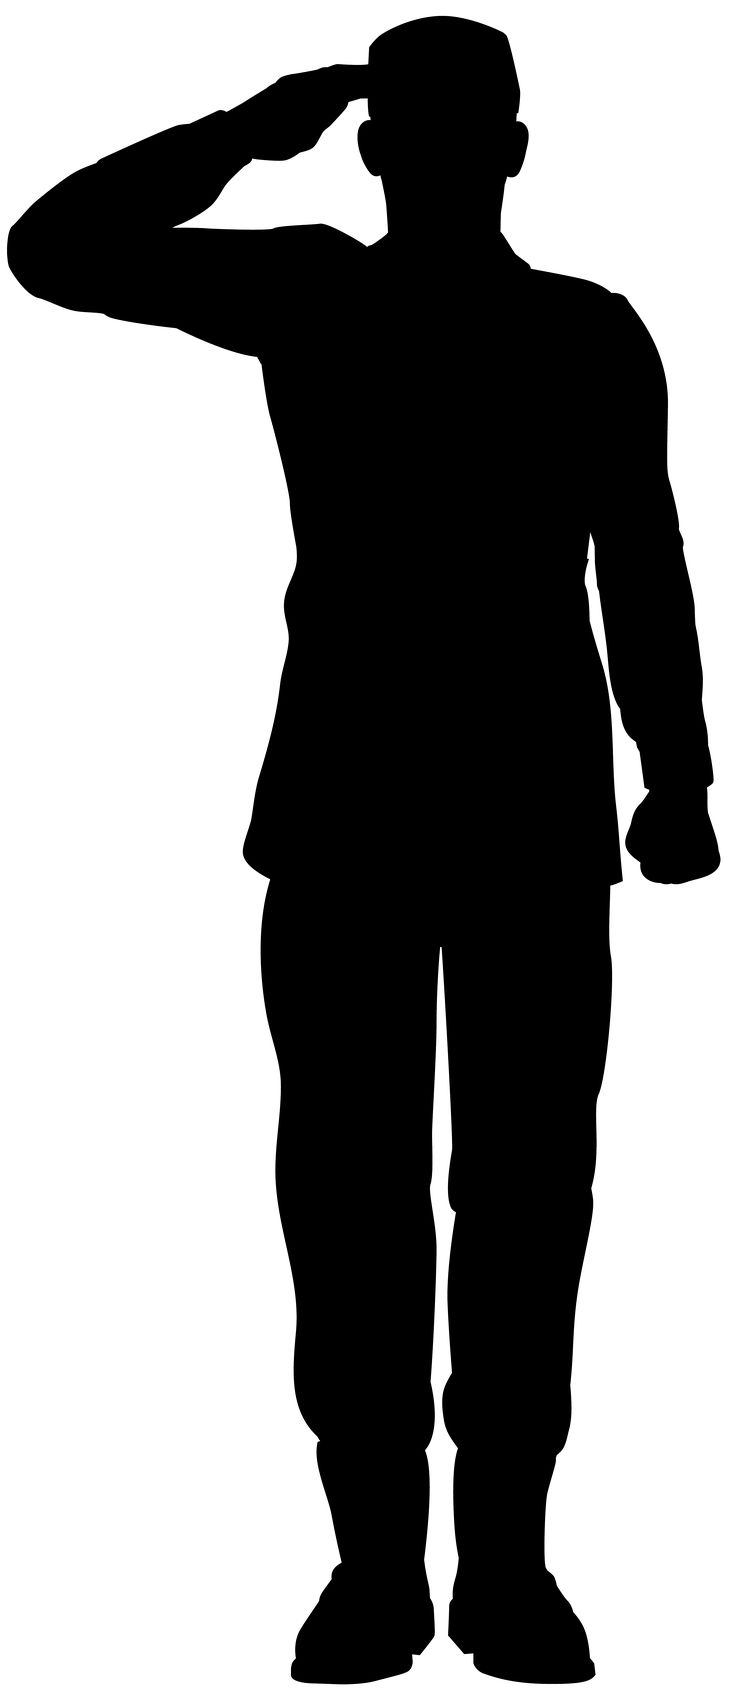 736x1695 Army Soldier Saluting Silhouette Png Clip Art Image